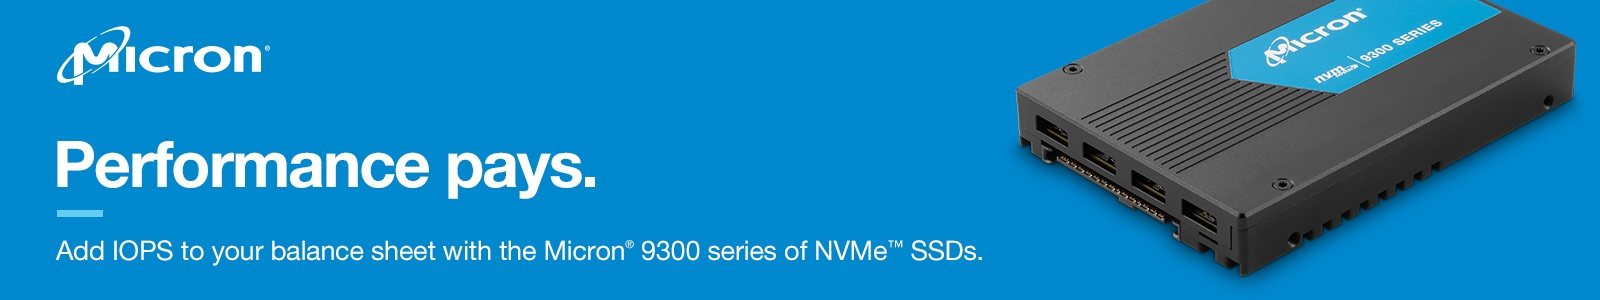 Using Namespaces on the Micron 9300 NVMe SSD to Improve Application